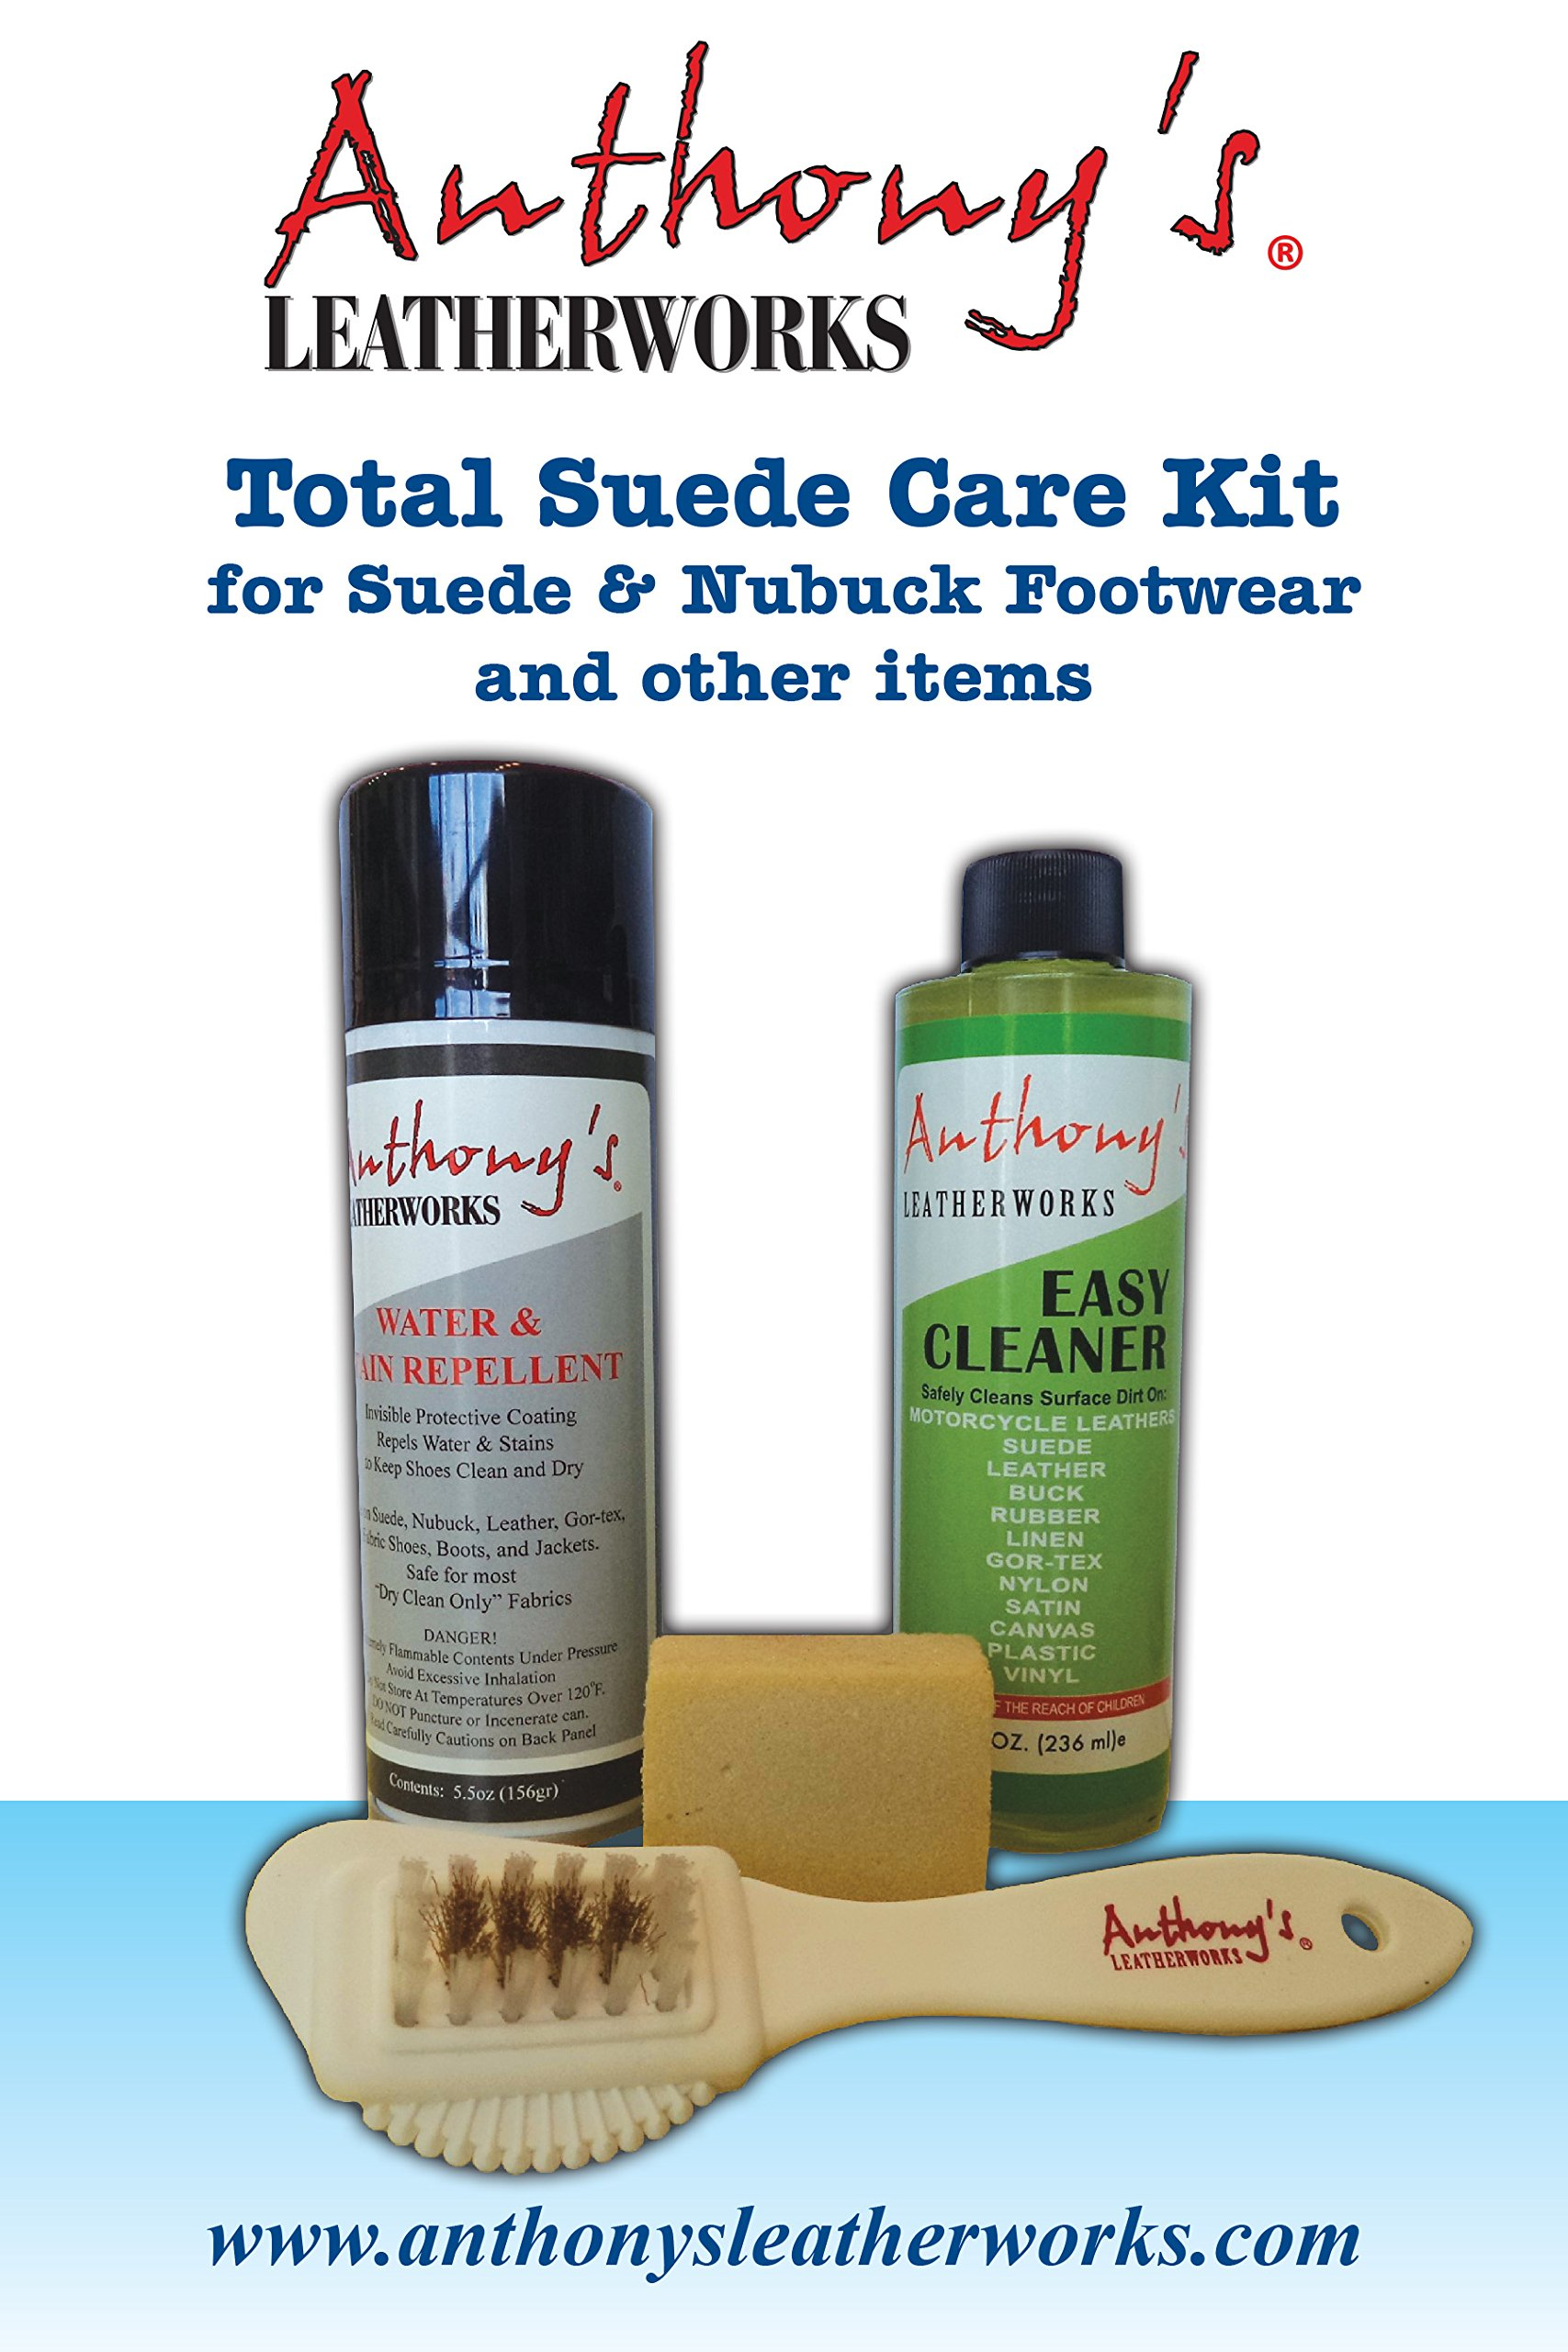 Anthony's Leatherworks Total Suede Care Kit for Suede & Nubuck Footwear, shoes, boots, jackets, purses and other items